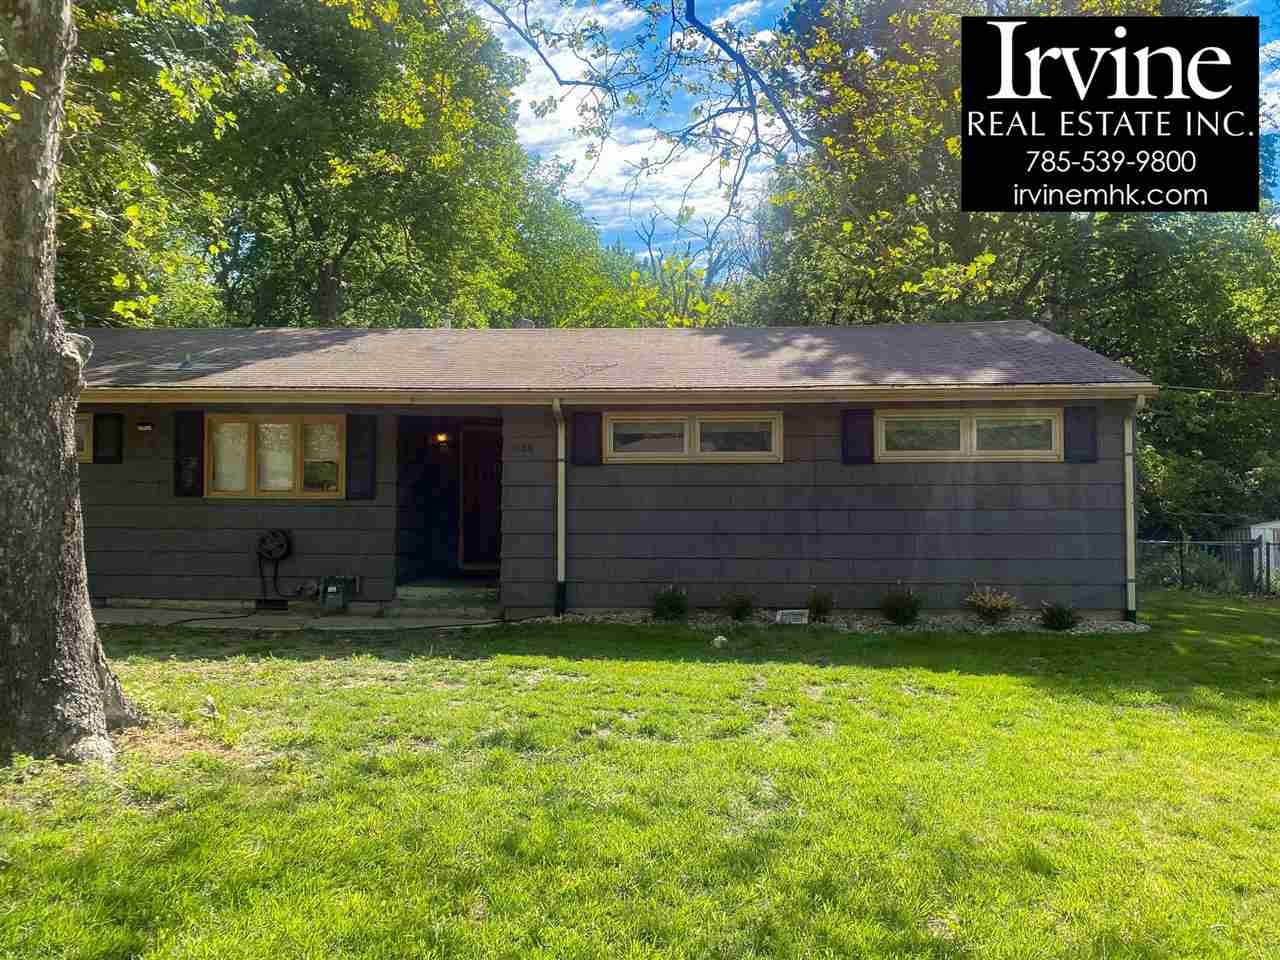 Come see this home!  It is affordable with beautiful wood floors and a perfect location! ...Clean, paint a little and save so much!  Still partially tenant occupied and advance notice is required.